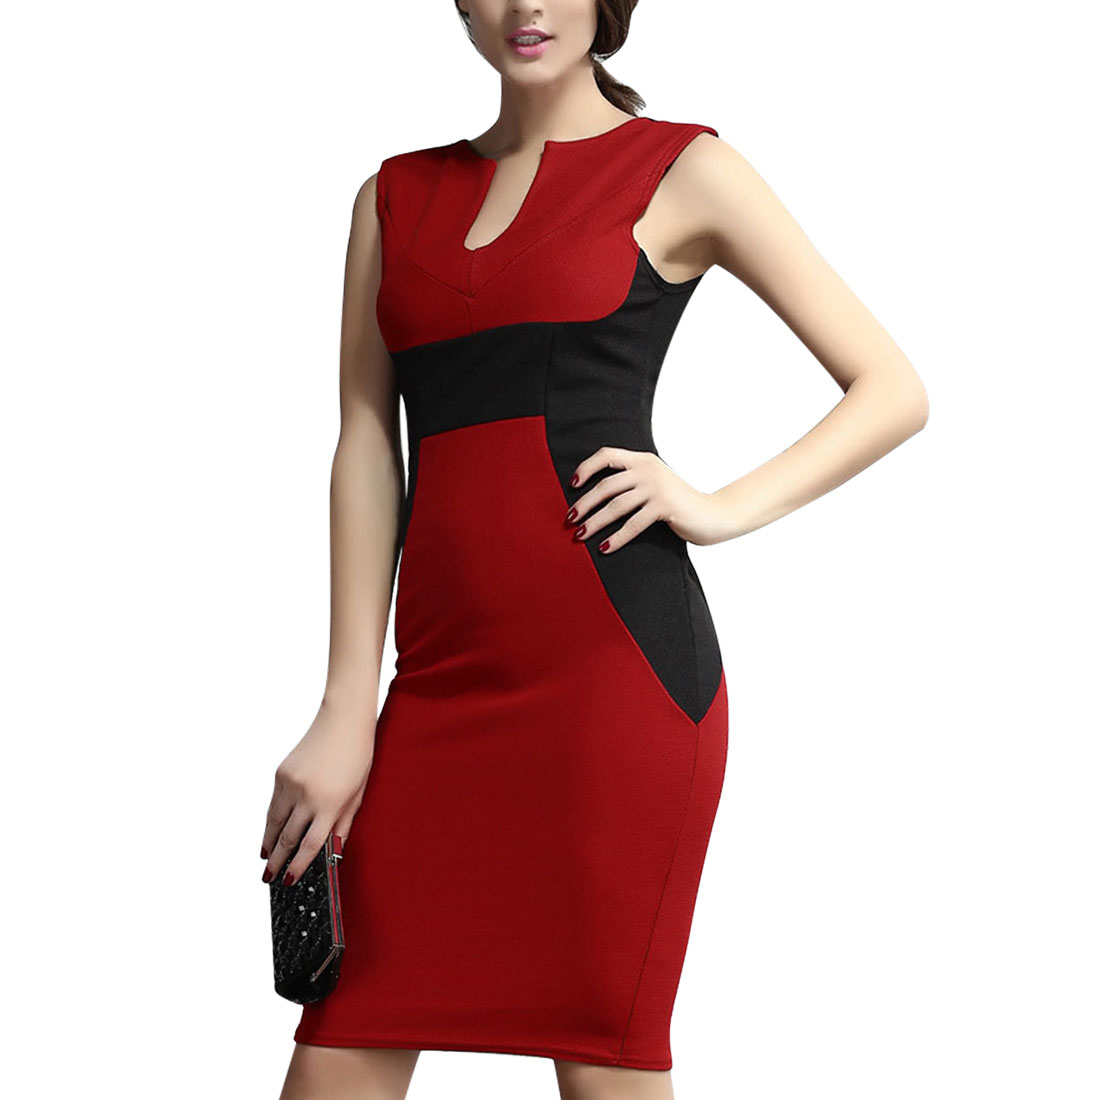 Women's Contrast Color Sheath Dress Red (Size M / 8)